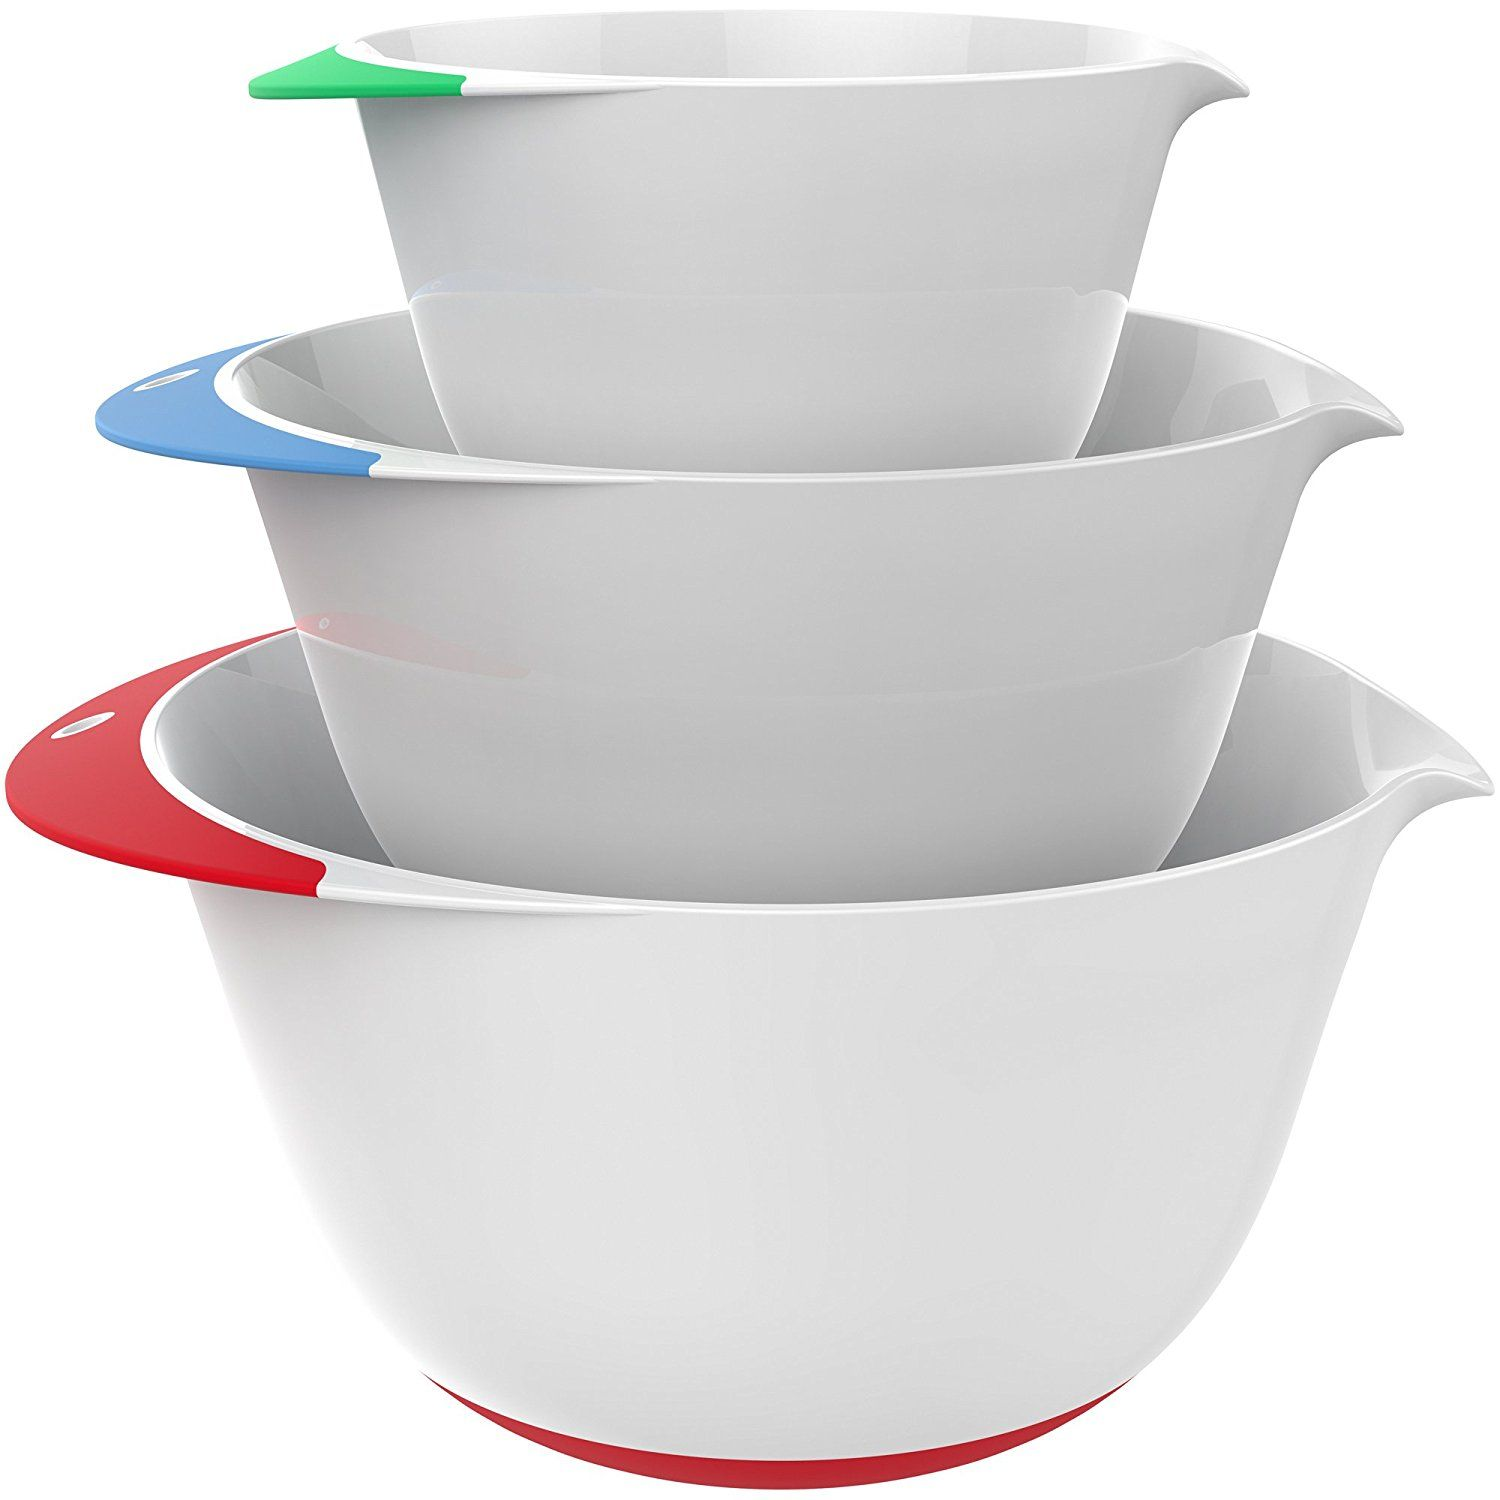 Amazon Com Vremi 3 Piece Plastic Mixing Bowl Set Nesting Mixing Bowls With Rubber Grip Handles Easy Pour Spout And Non Slip Bottom Three Sizes Small Cozinha